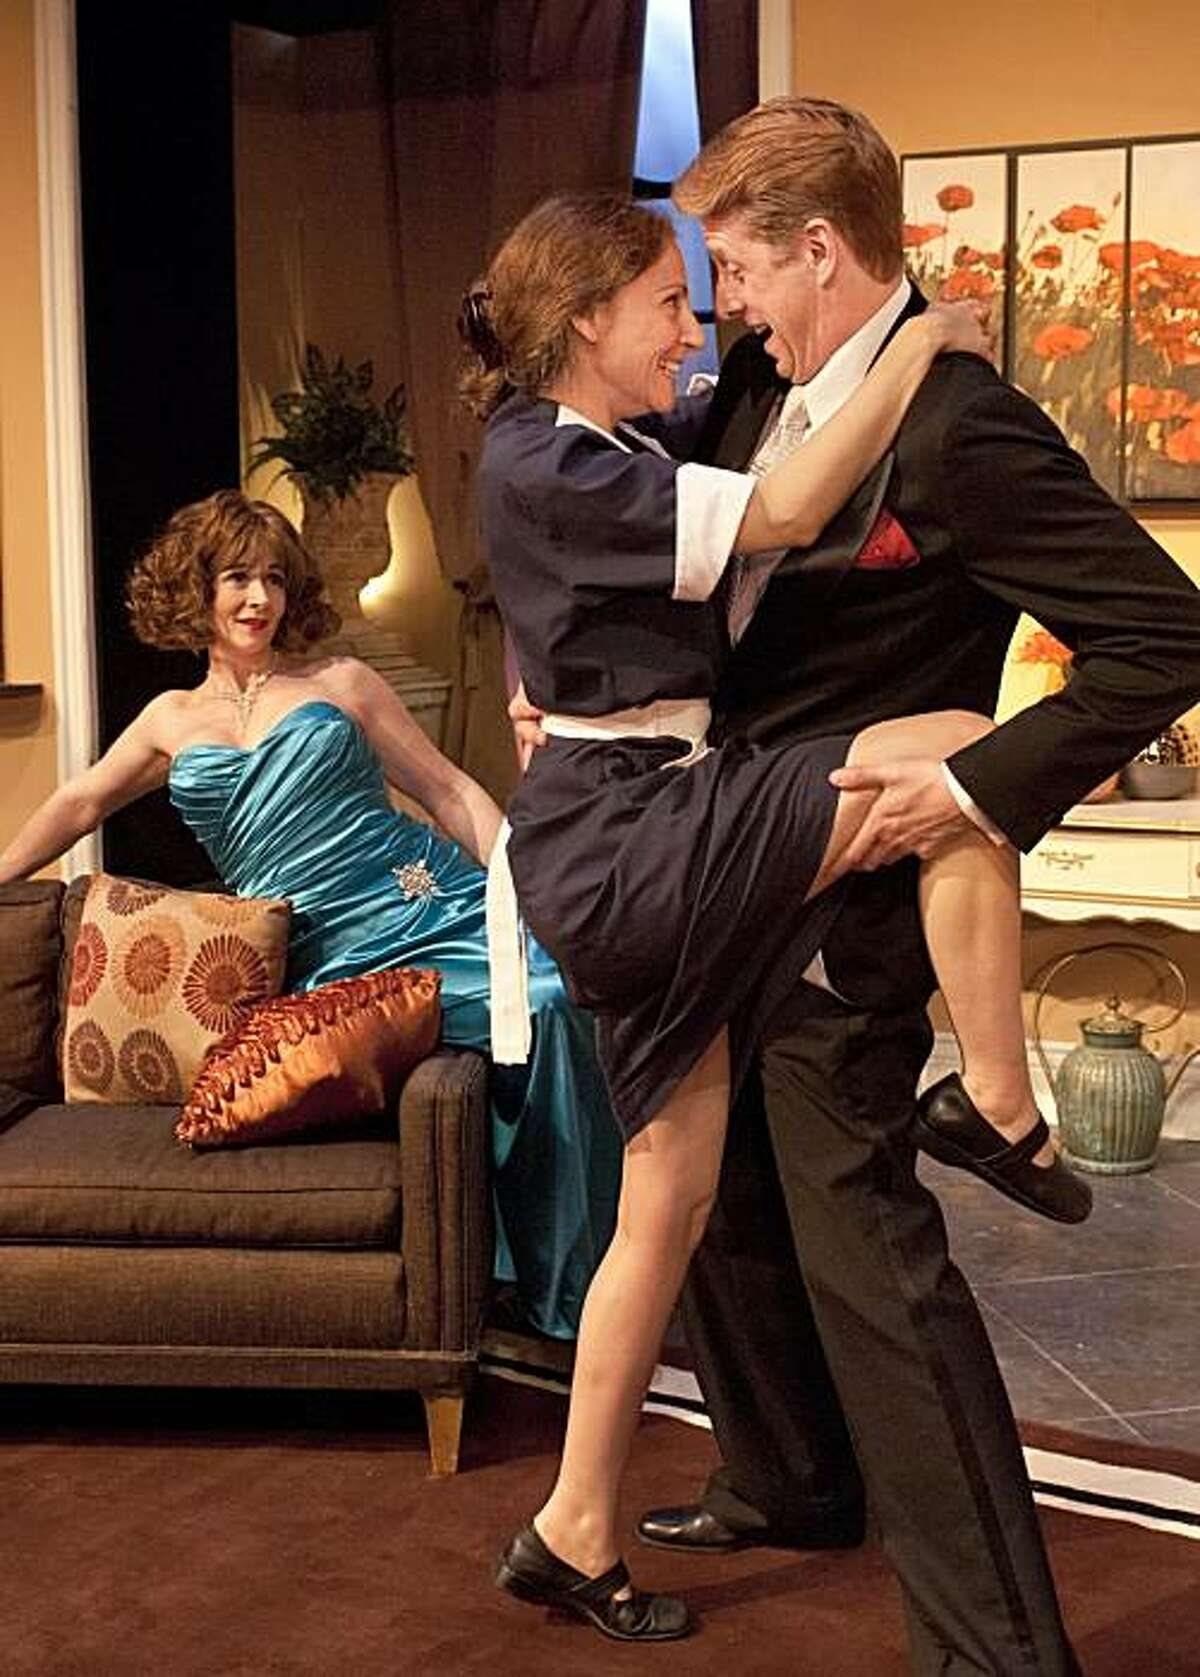 """Tibby (Sarah Shoshana David, left) watches as her maid Myra (Alison Sacha Ross) greets family friend Hank (Patrick Michael Dukeman) in Paul Rudnick's """"Regrets Only"""" at New Conservatory Theater"""